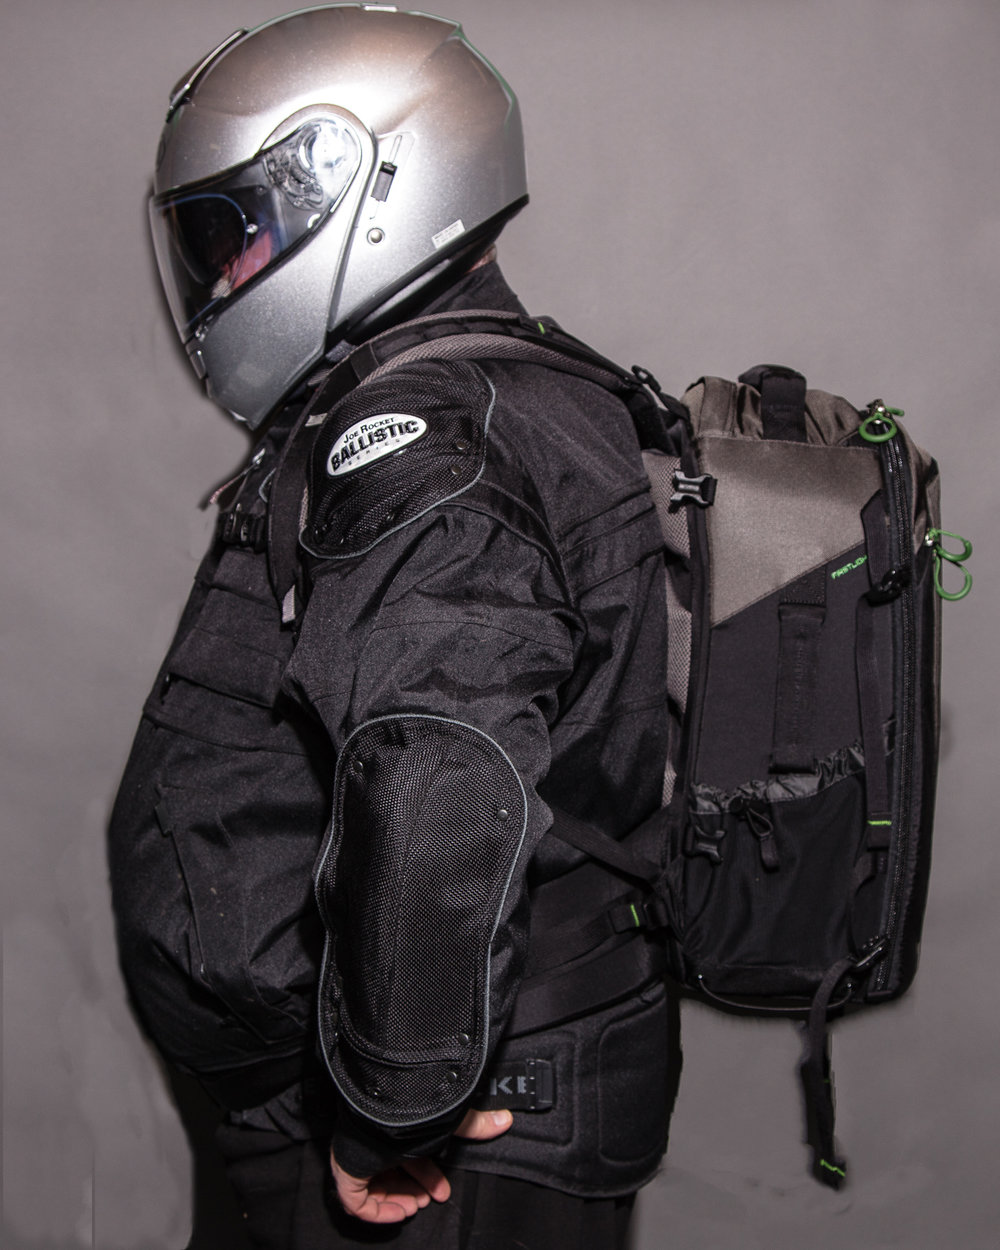 You can see that the bottom of the bag still sits above the natural waist, even with the strap plate fully extended. I would raise the bag a notch measurement and am still confident of no interference with my helmet